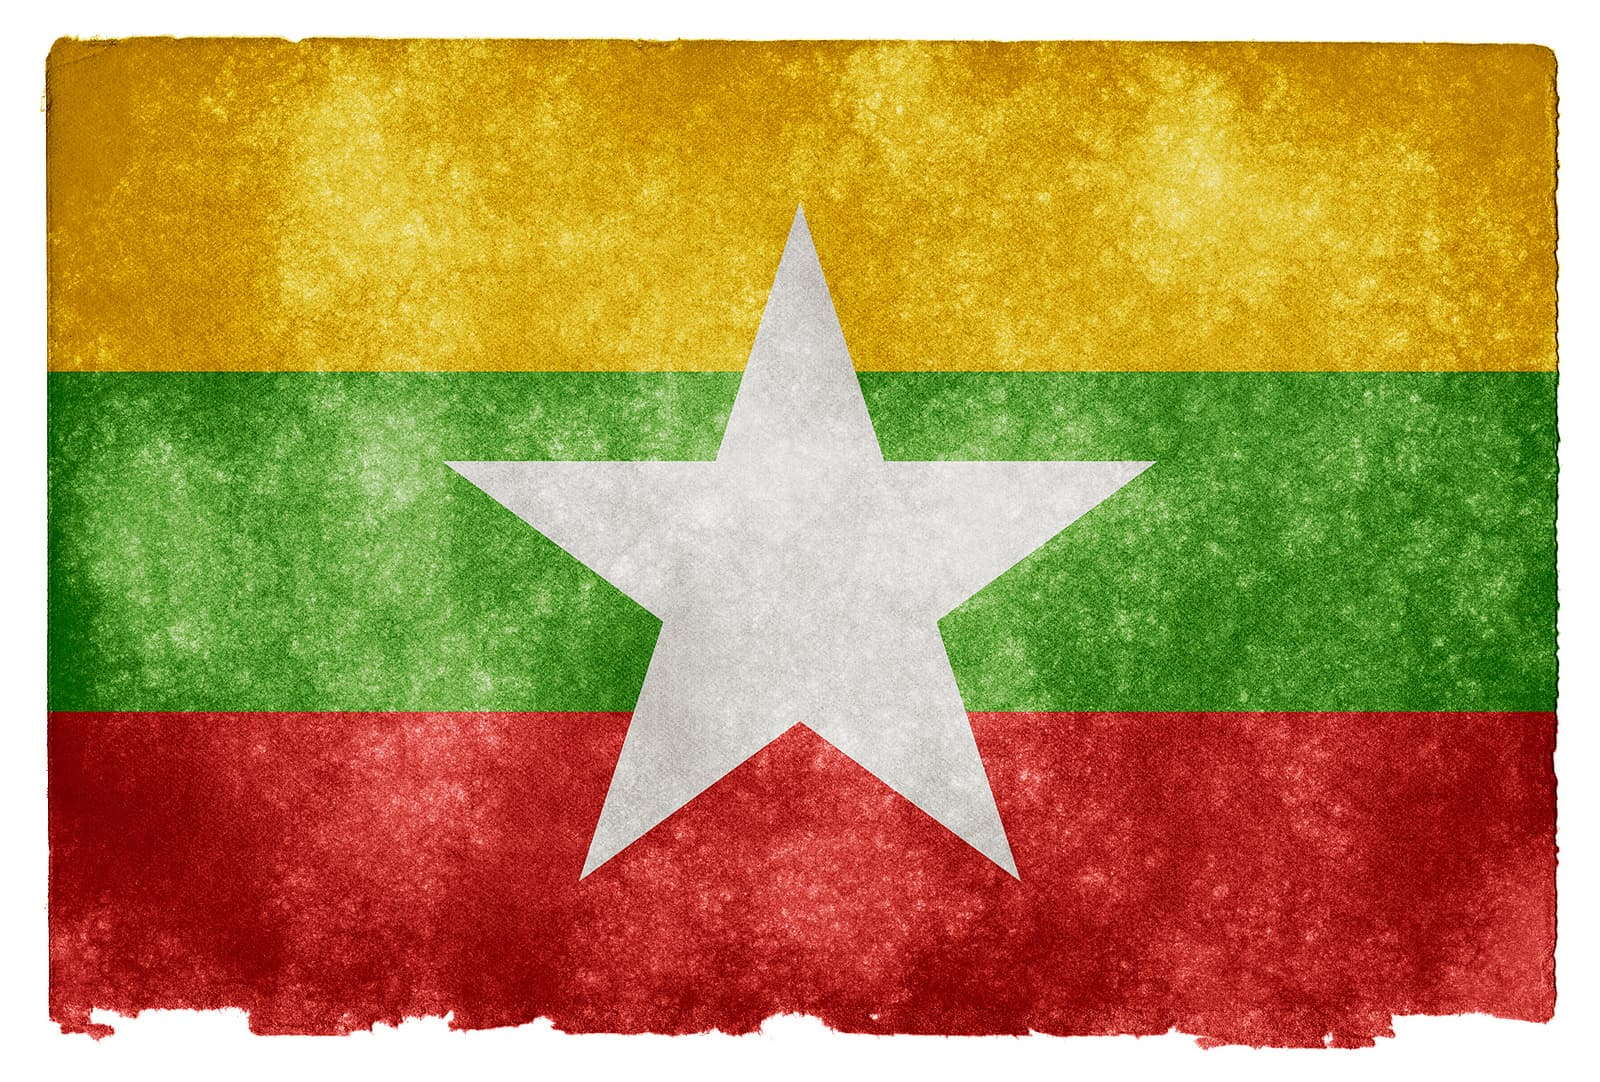 Best VPNs for Myanmar to keep your Online Activity Private | Comparitech